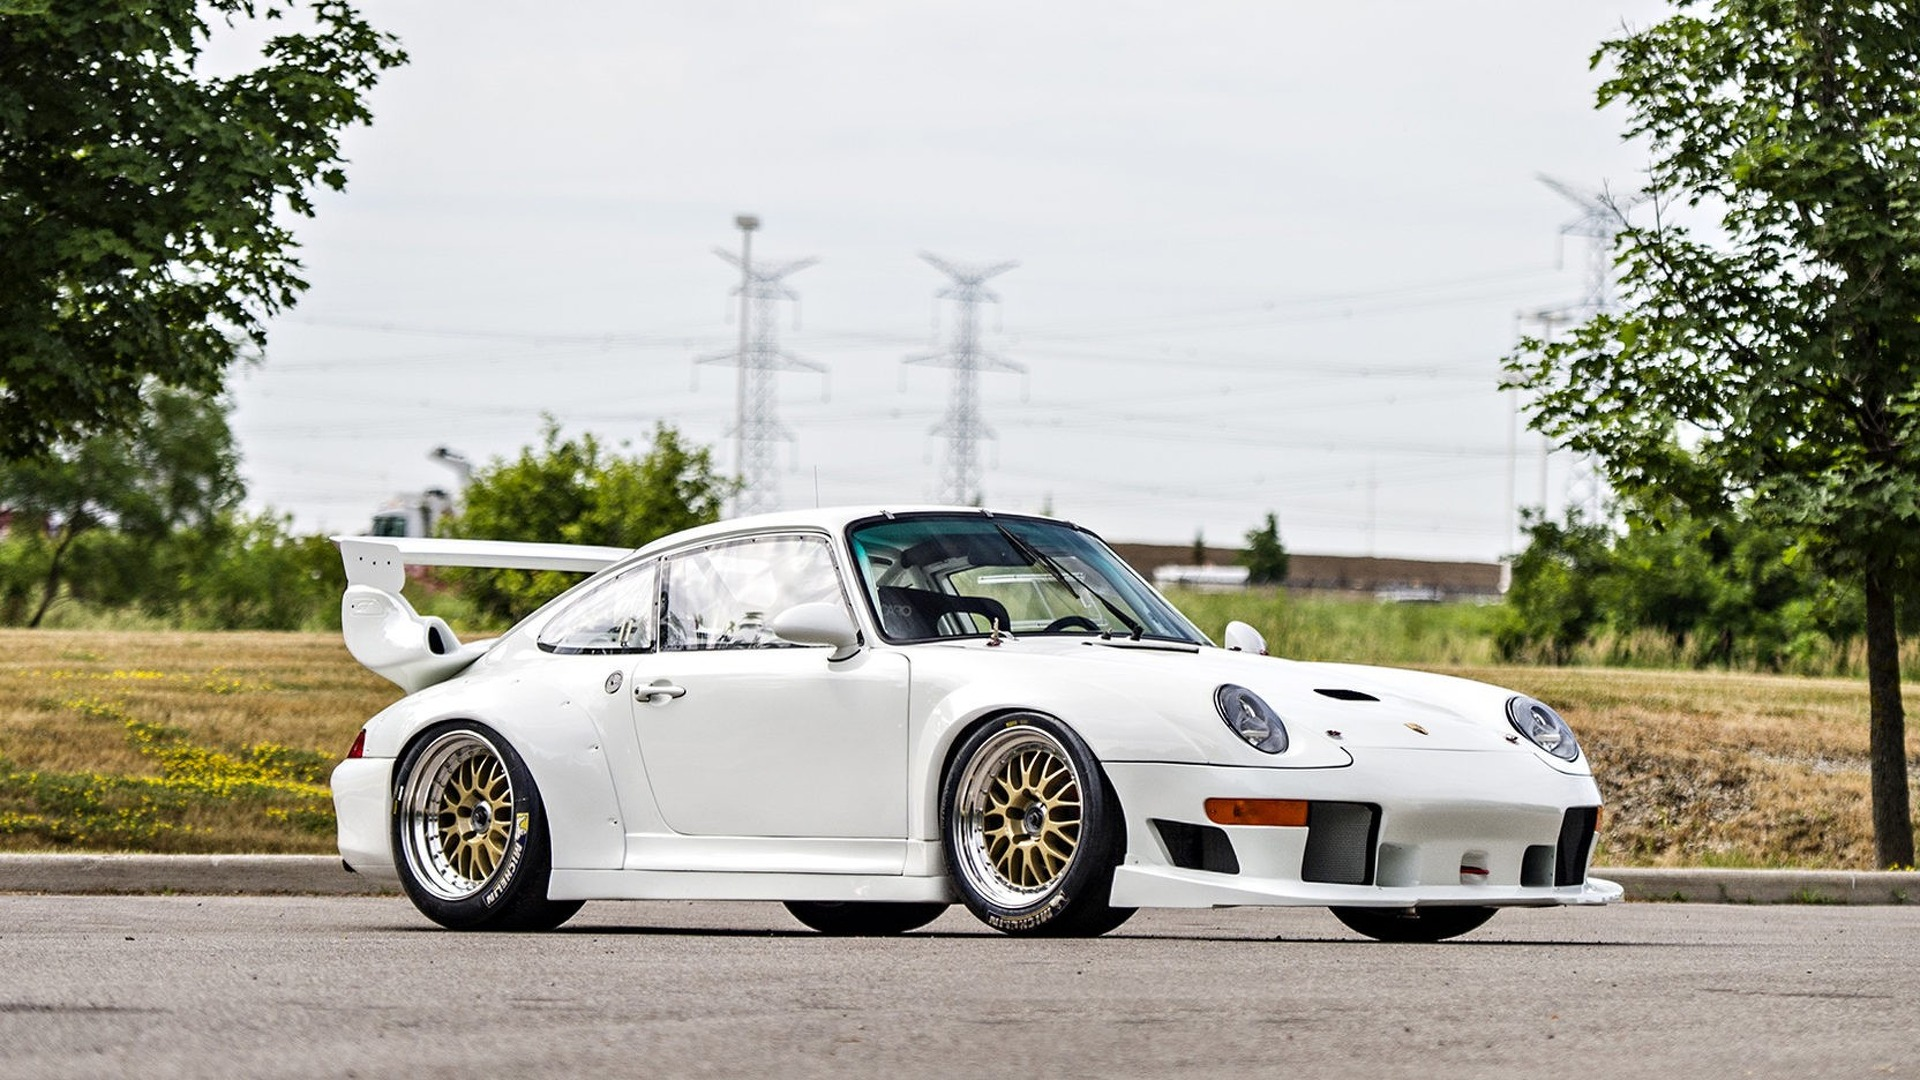 Porsche 911 GT2 Evo 1996 in auction (3)